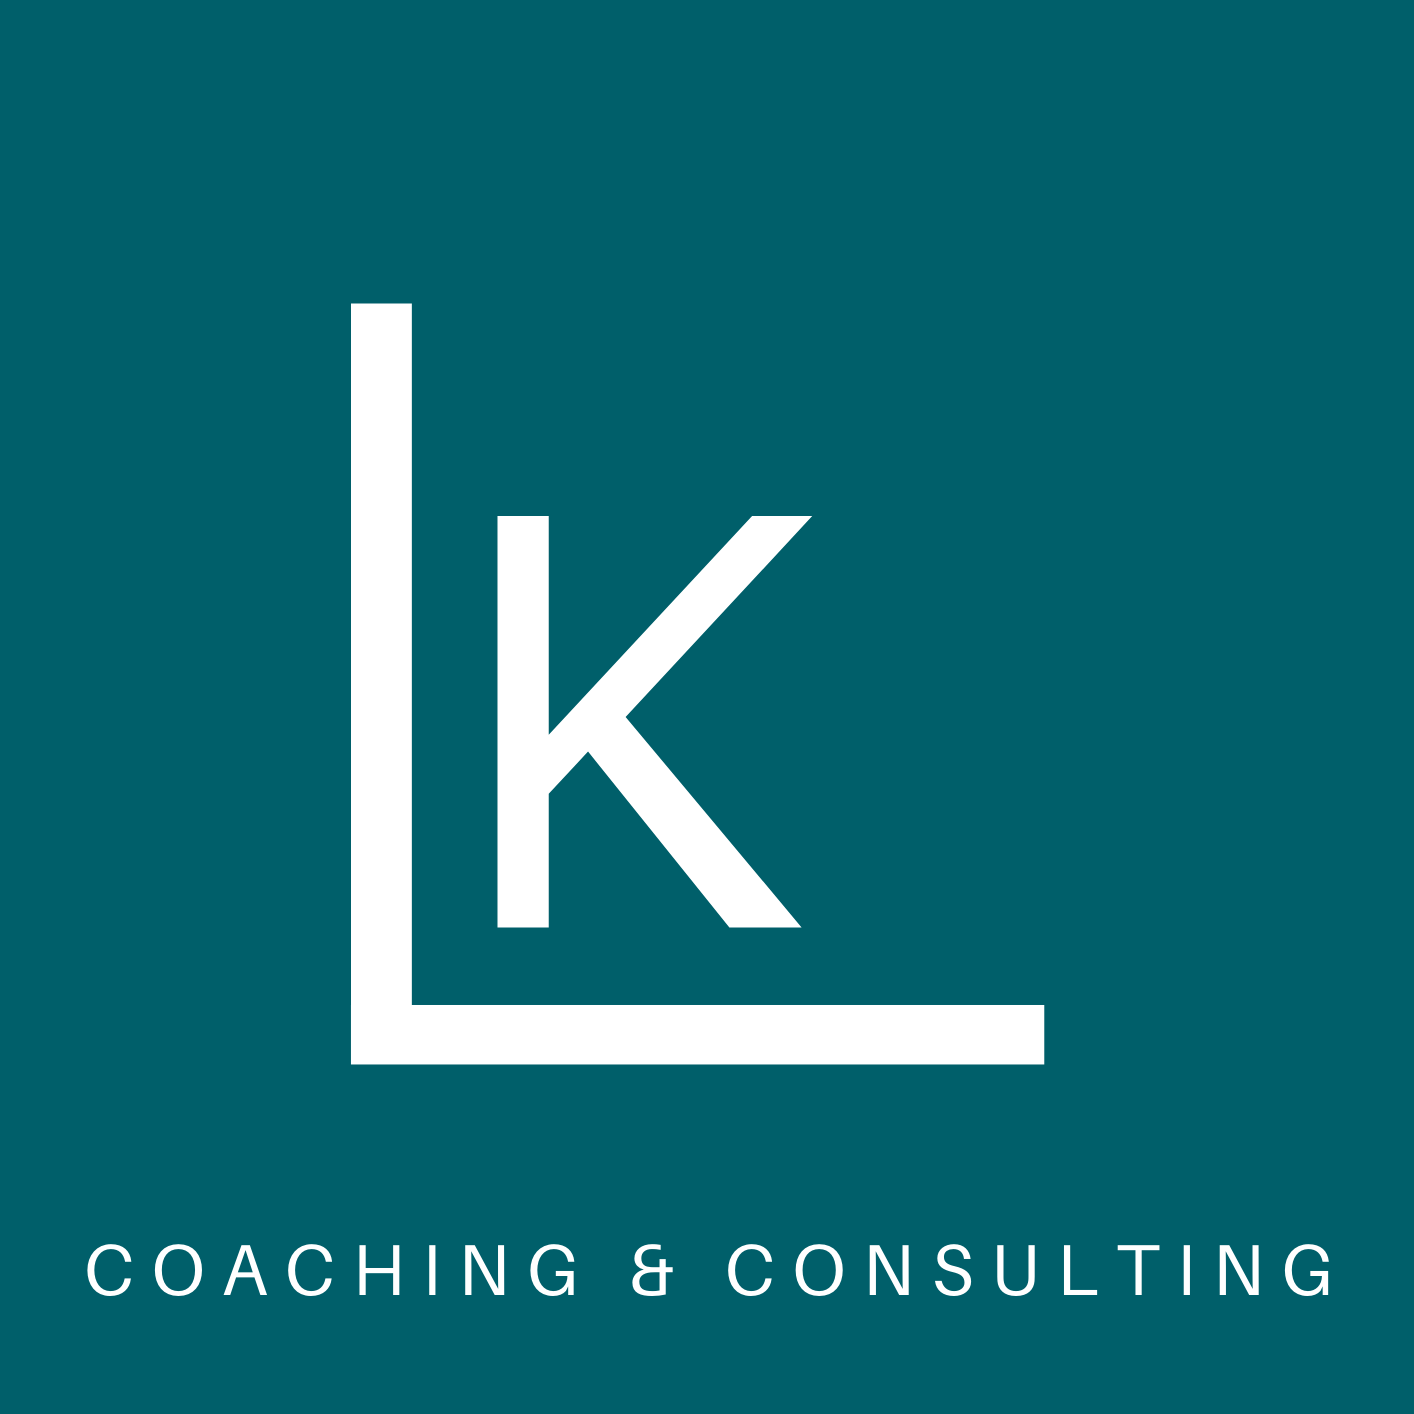 Louise Kjær | Coaching & Consulting